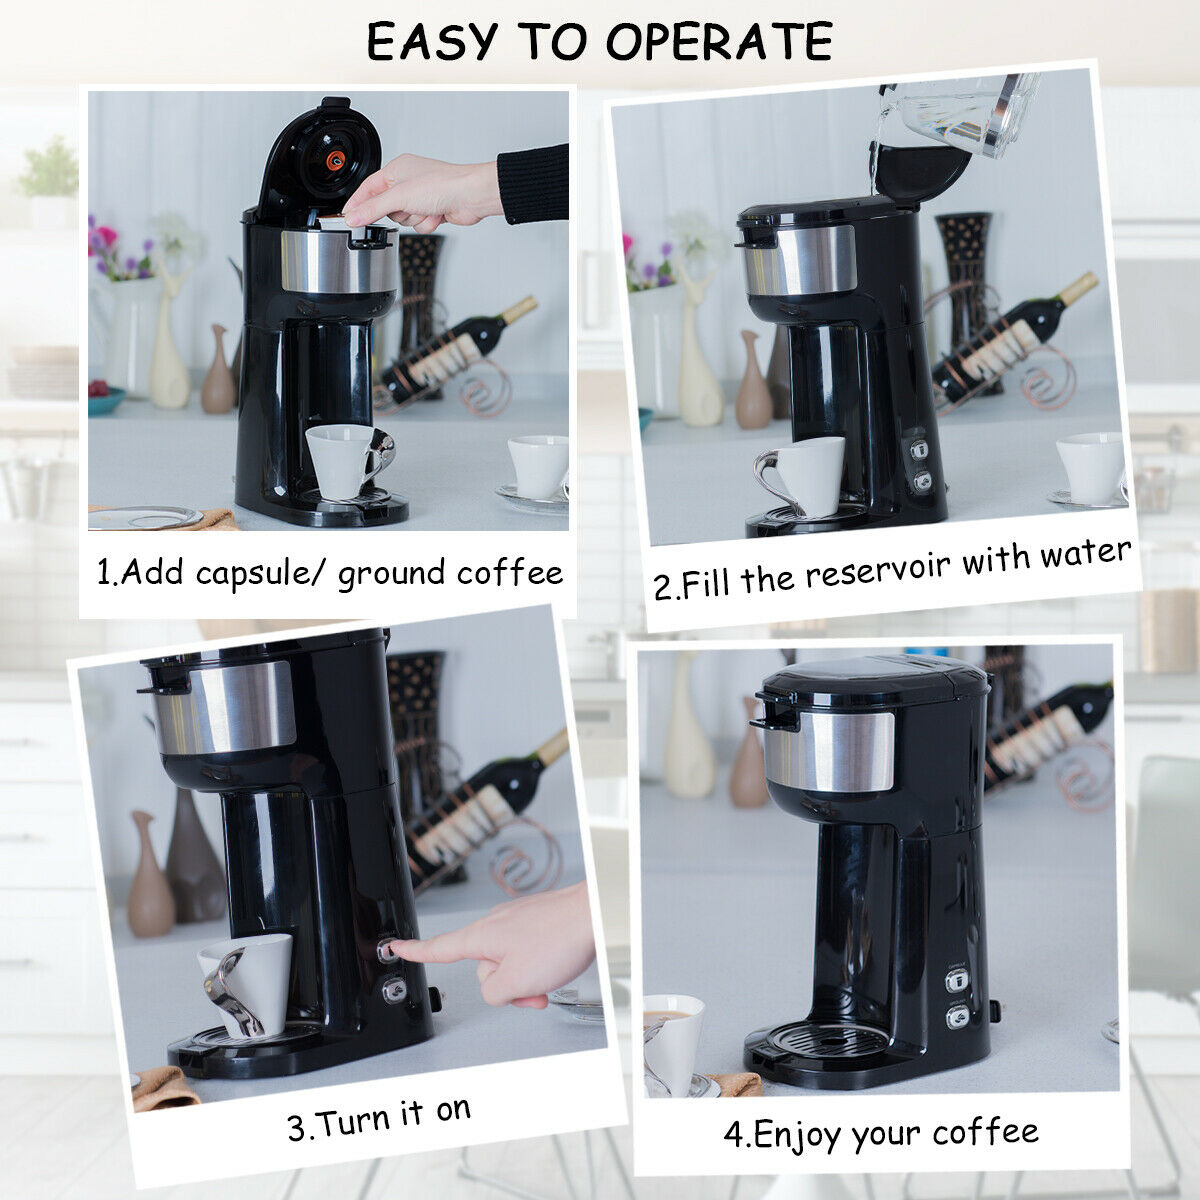 ec8306428d3 Gymax 2 in 1 Portable Coffee Maker Coffee Machine for Ground Coffee and  Coffee Capsule